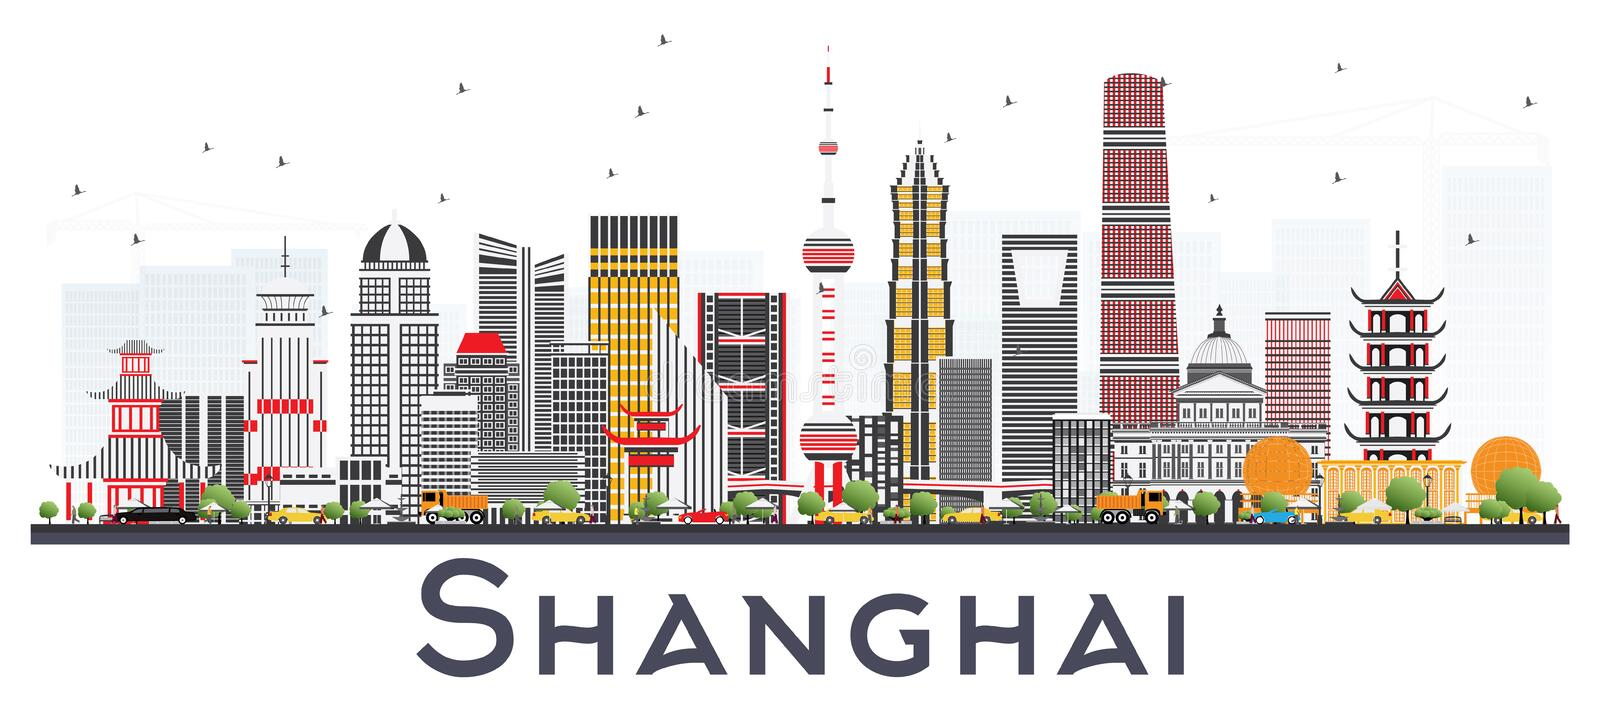 Shanghai China City Skyline with Color Buildings Isolated on White. Vector Illustration. Business Travel and Tourism Concept with Modern Architecture. Shanghai royalty free illustration